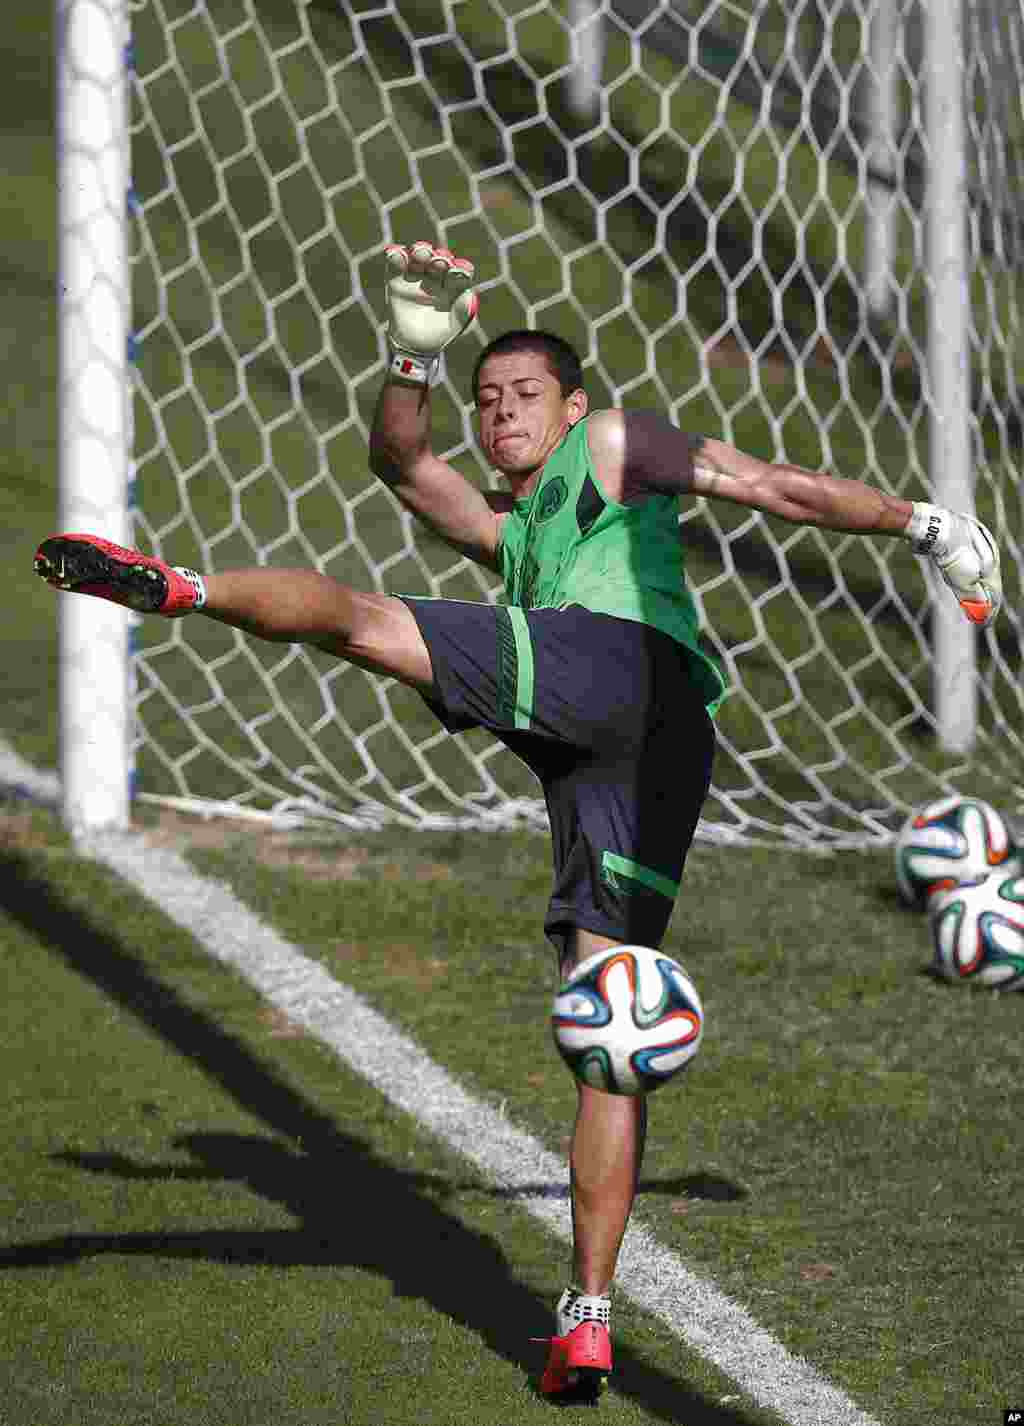 Mexico's national soccer player Javier Hernandez kicks the ball during a training session in Santos, Brazil, June 8, 2014.